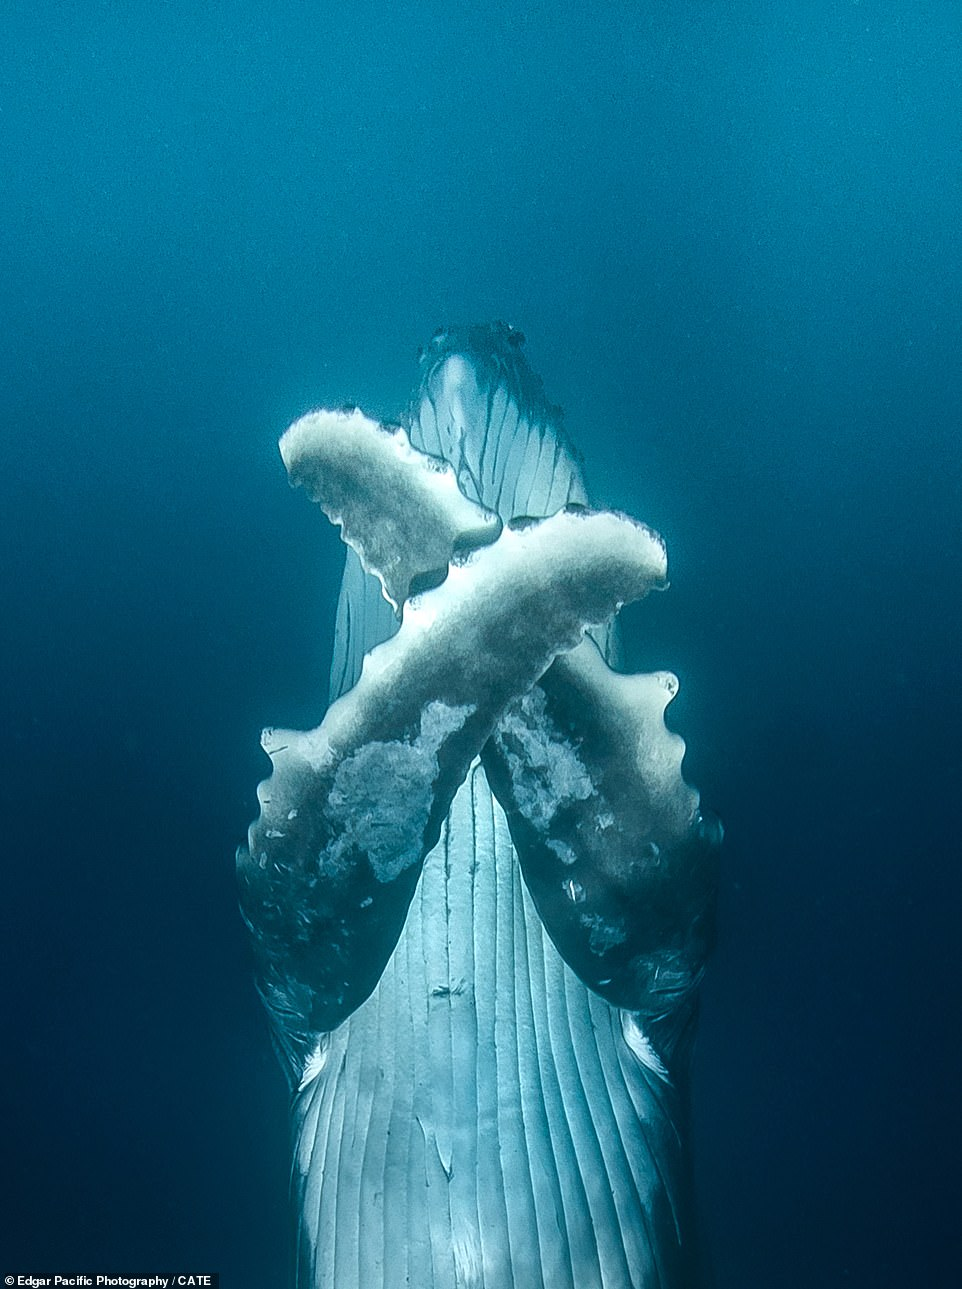 David, from Sydney, Australia, managed to capture these incredible images while on a free dive and added that these group of whales were relaxed and curious around him